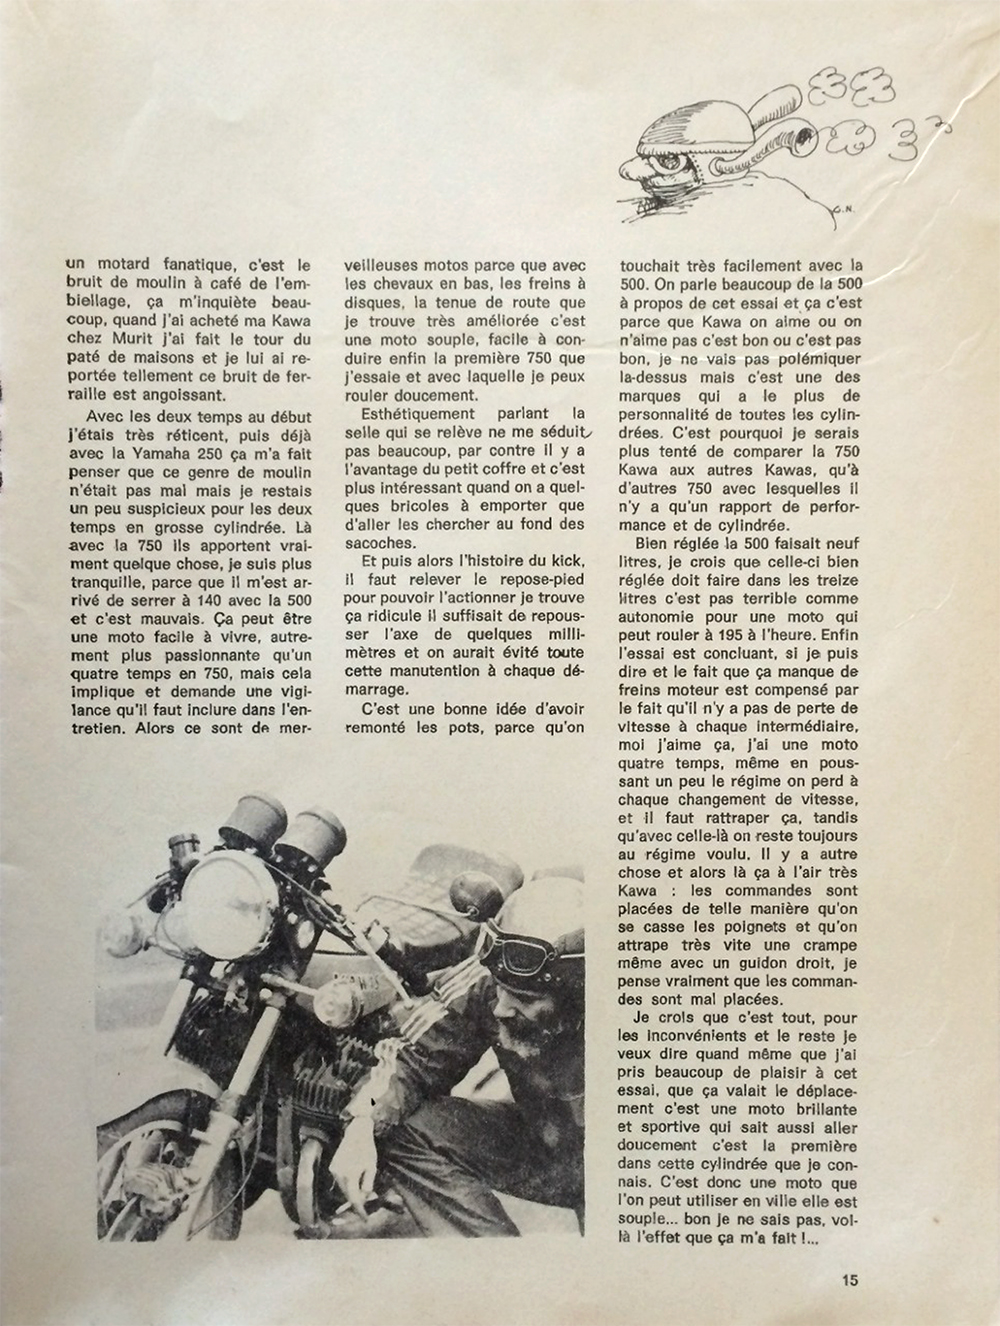 1972 Kawasaki 750 H2 road test france 08.jpg